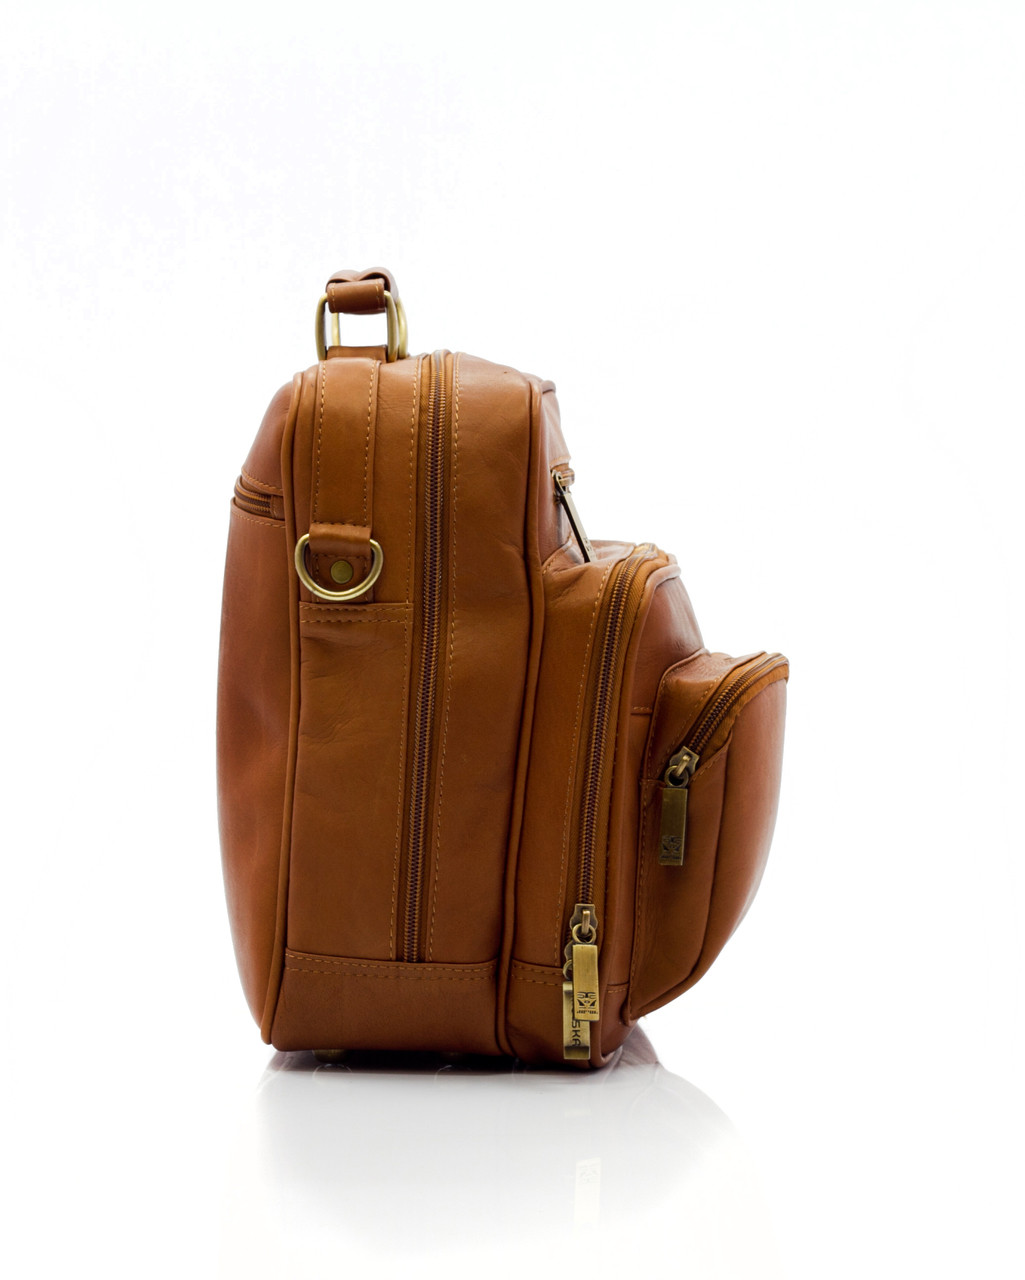 Muiska - Carlos - Men's Leather Everyday Bag - handcrafted fine leather exterior